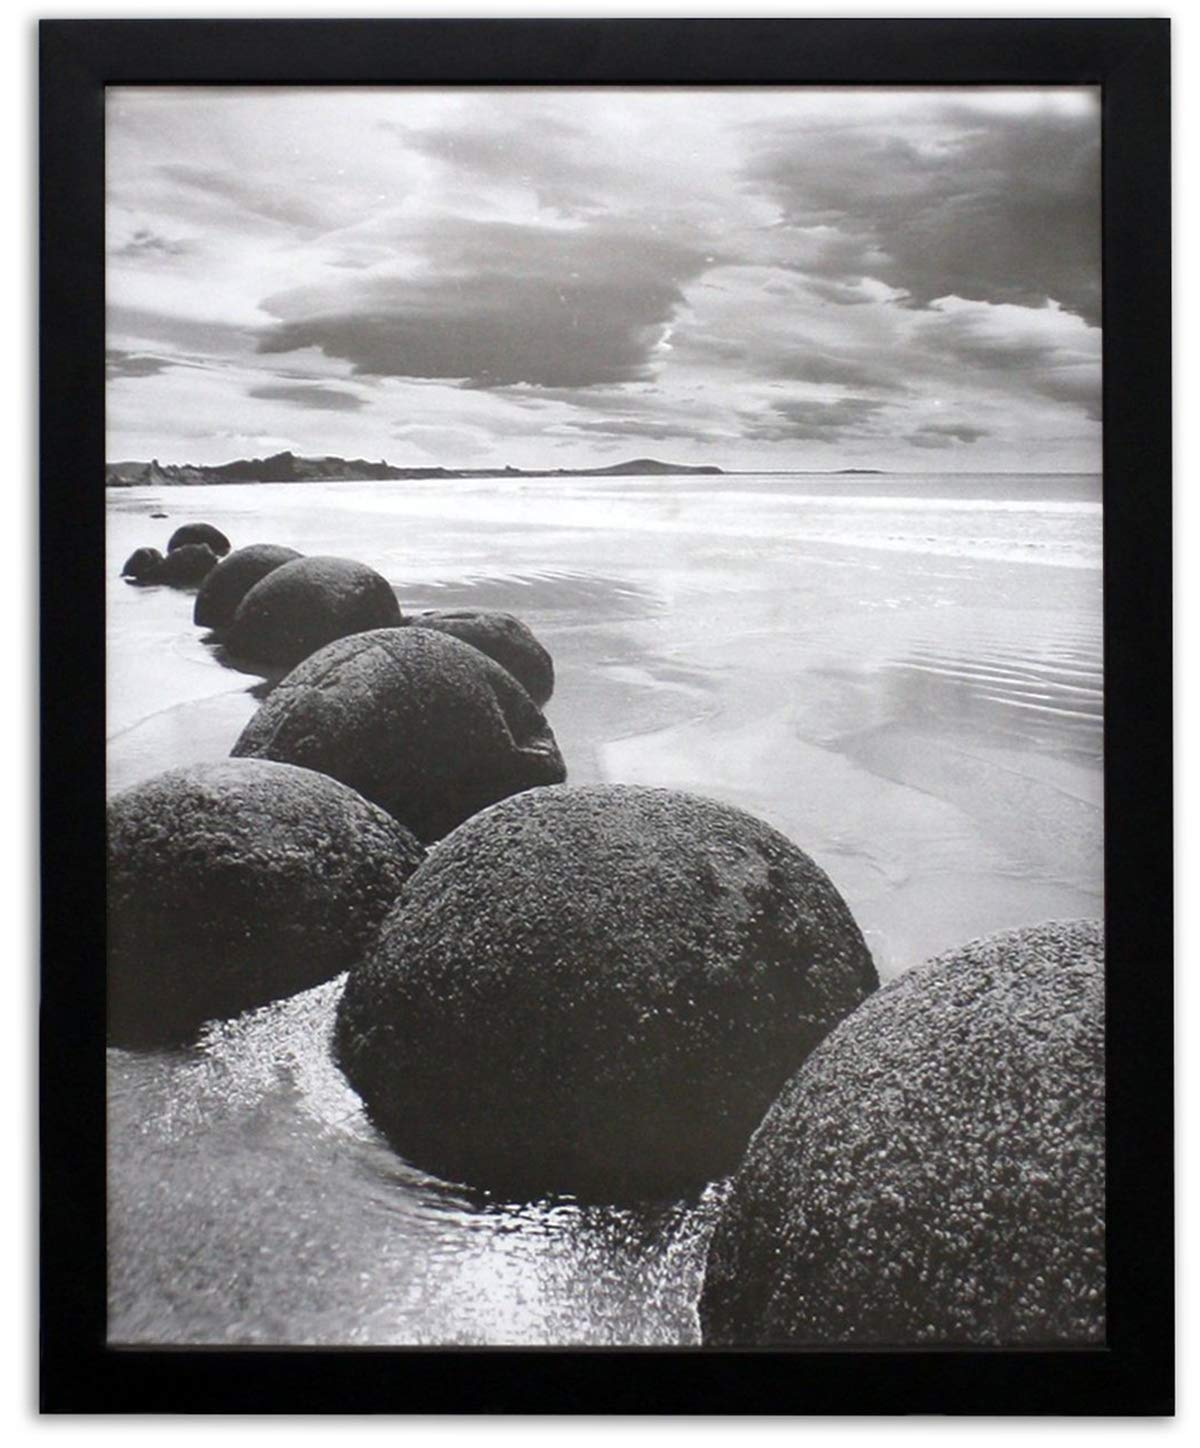 Golden State Art 16x20 Black Picture Frame, 1-1/4-Inch Wide with Real Glass by Golden State Art